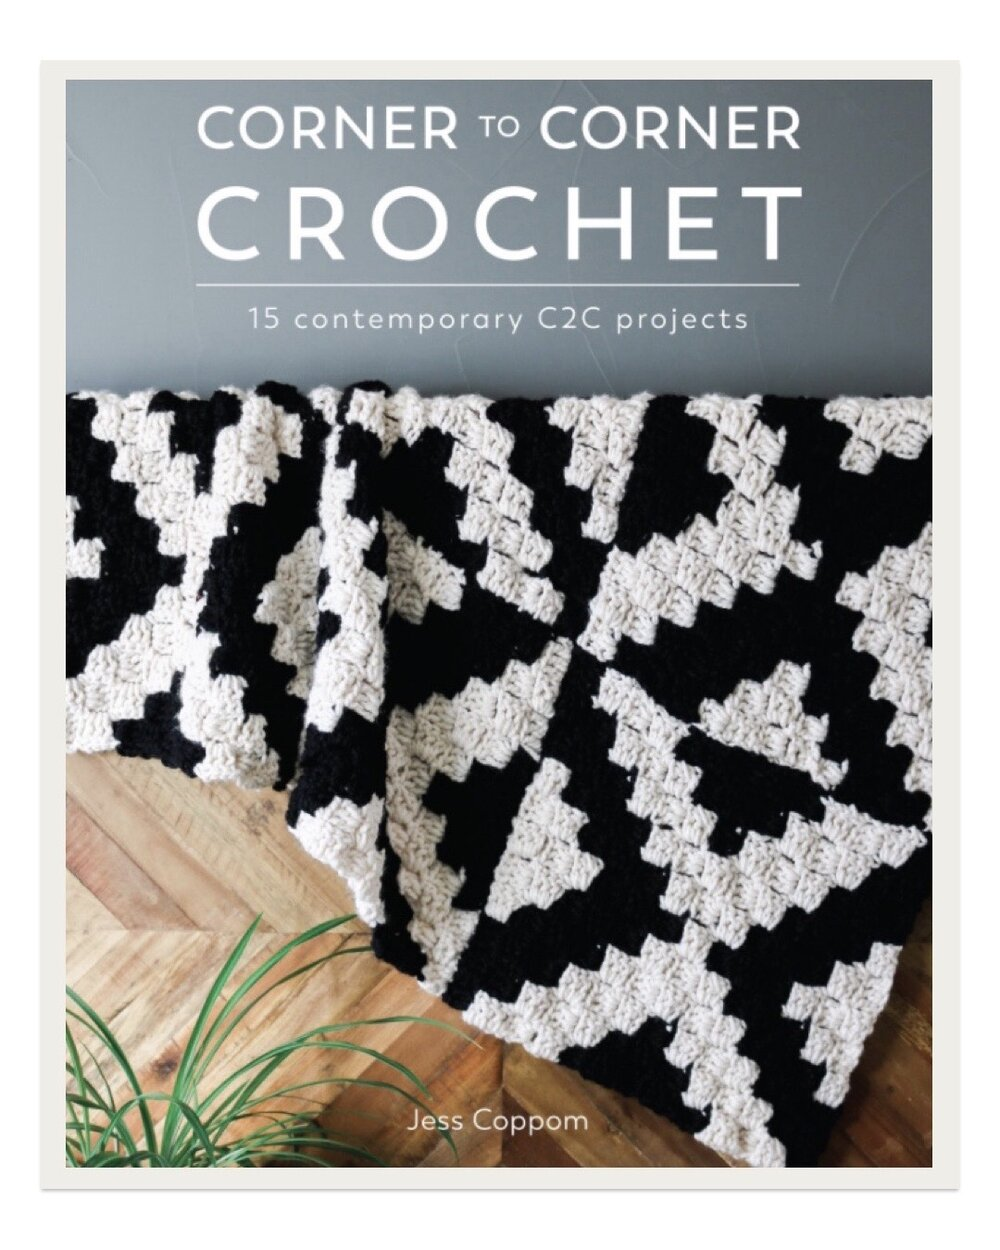 "Jess Coppom takes corner to corner crochet to a whole new level with this lovely book. I used to think corner to corner was only for super ""crafty"" looking charted blankets, but this book is FULL of fashion forward, tasteful and sophisticated projects for garments and home accessories."